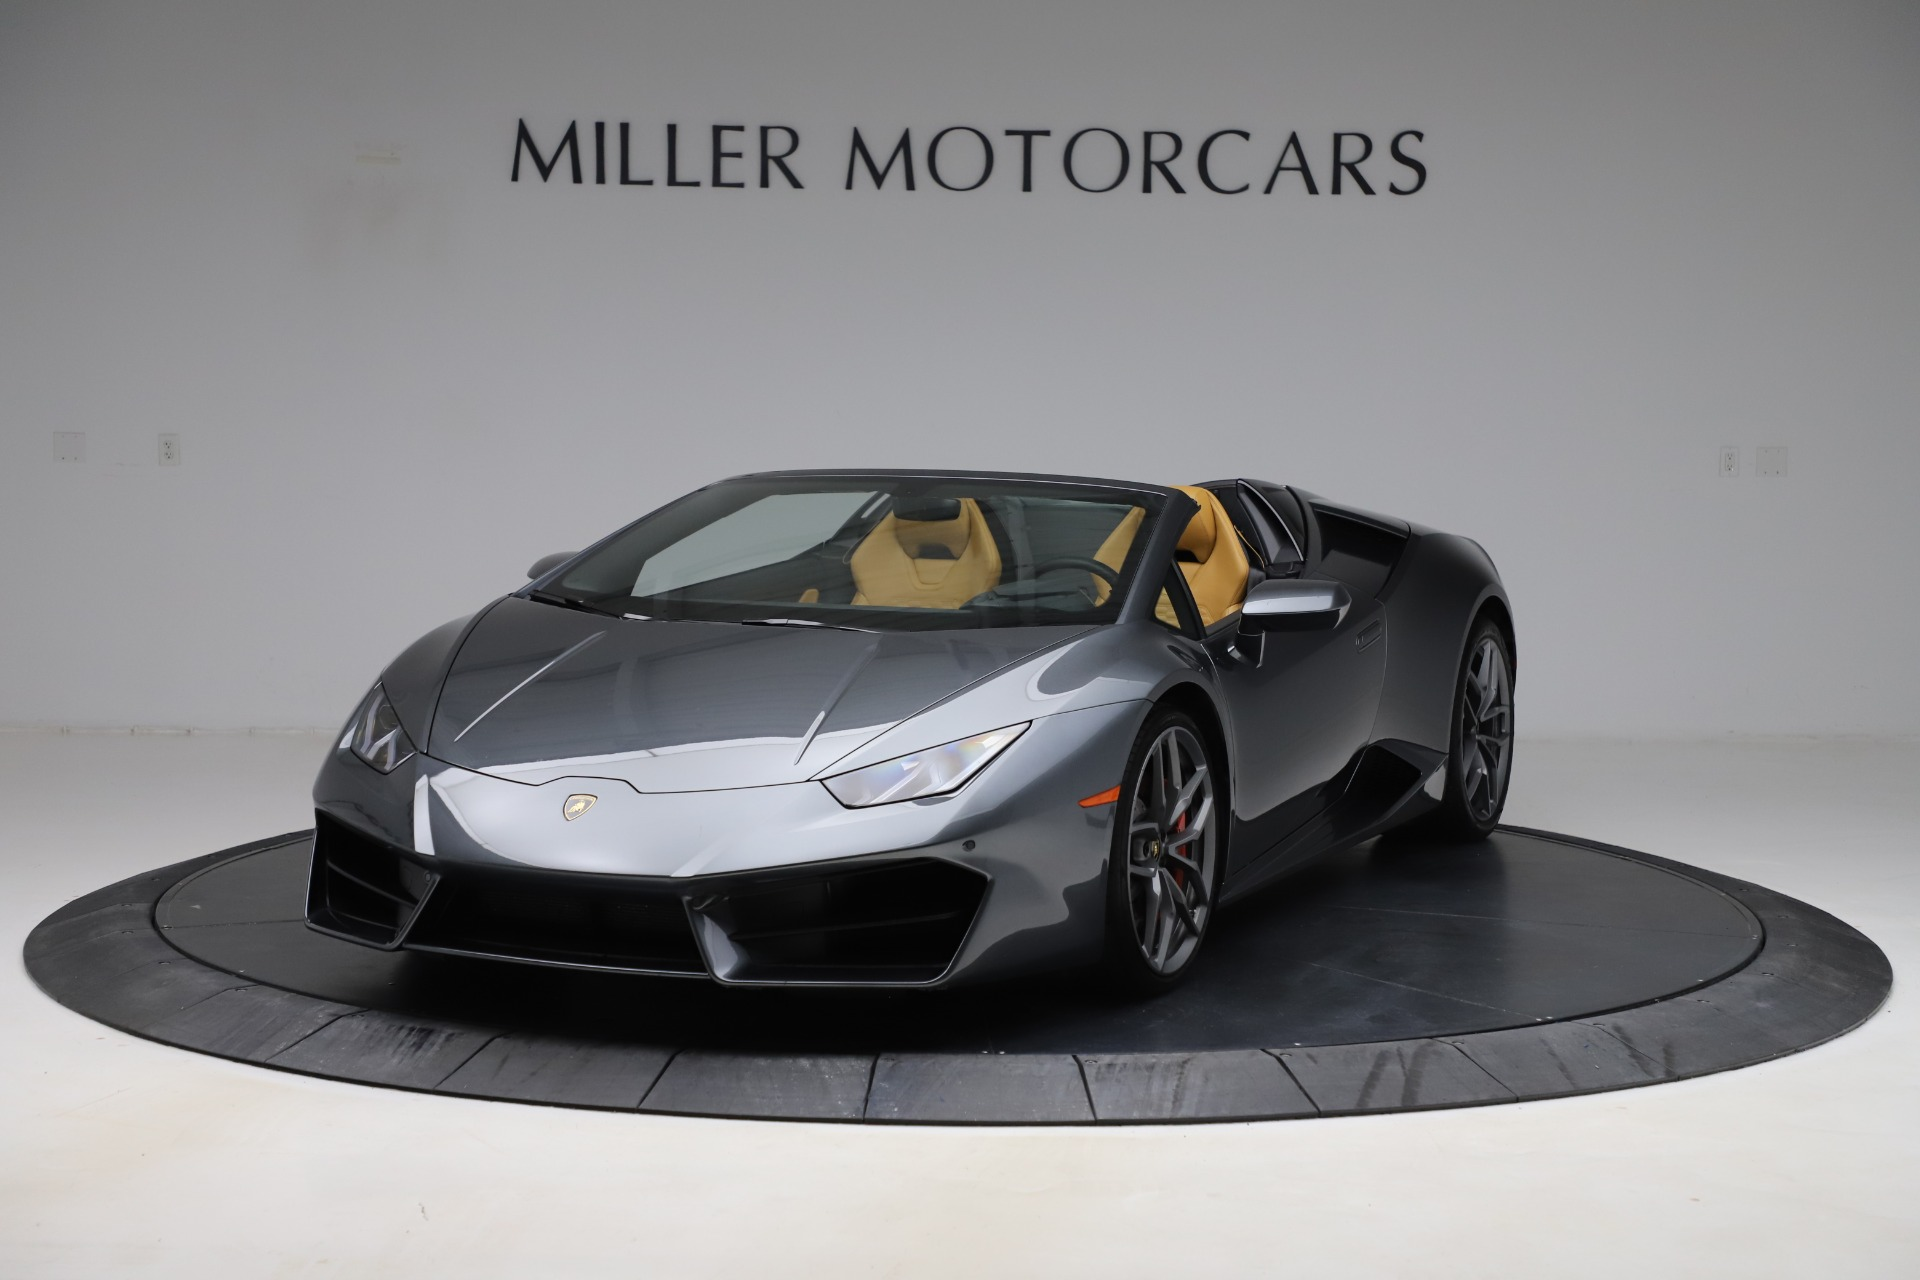 Used 2018 Lamborghini Huracan LP 580-2 Spyder for sale Sold at McLaren Greenwich in Greenwich CT 06830 1